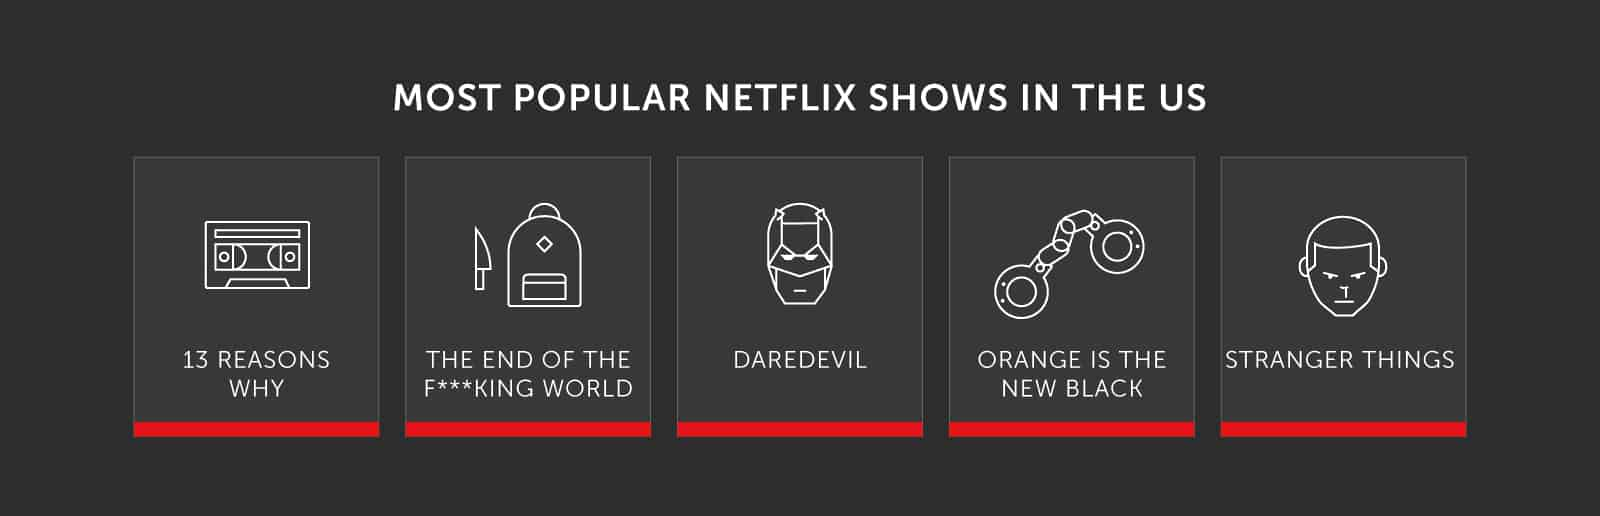 HSI most popular Netflix shows in 2018